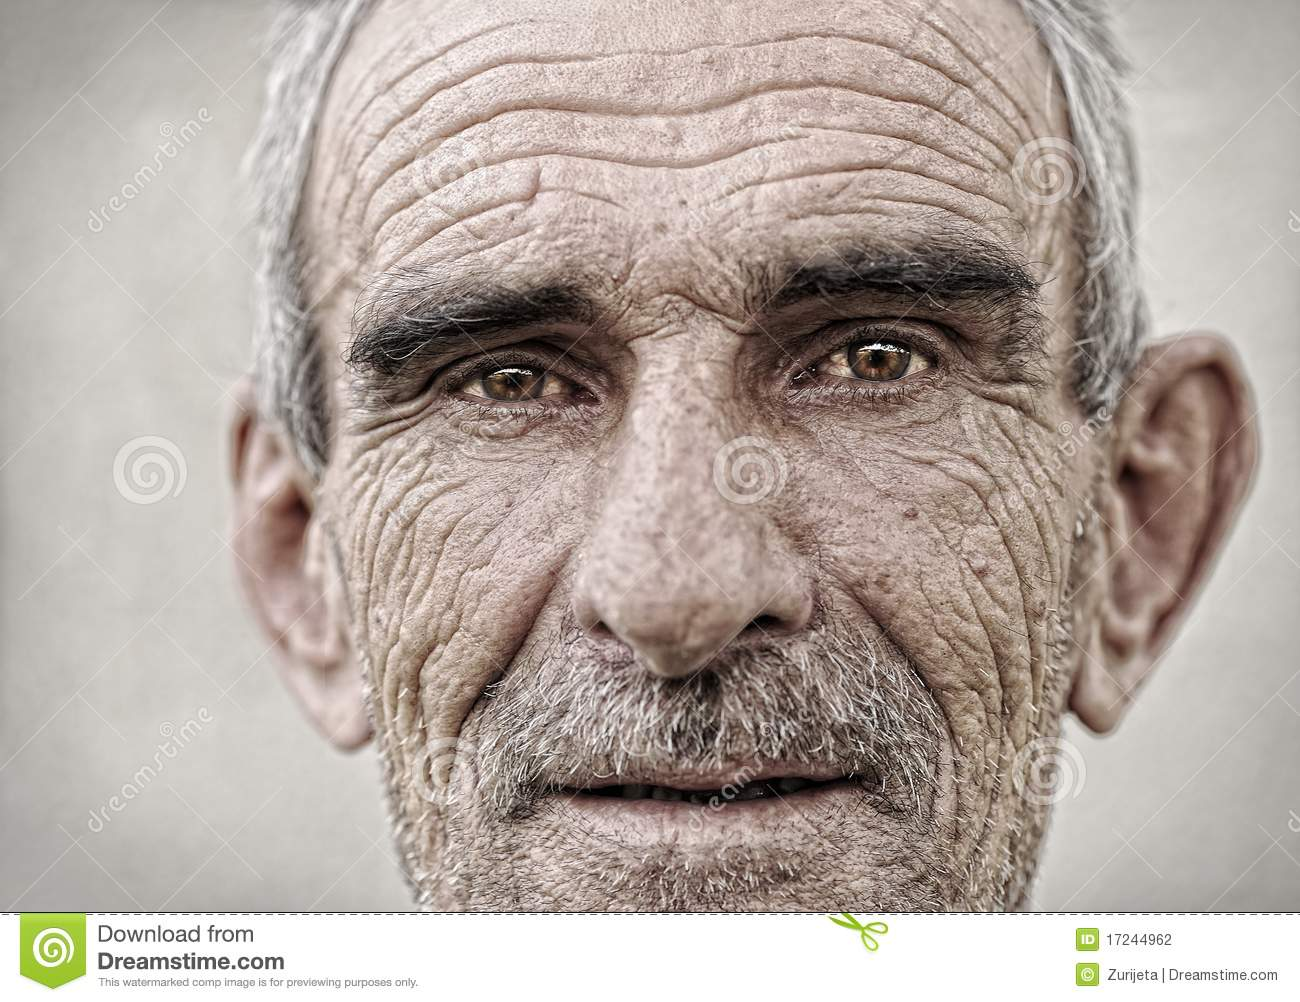 elderly man portrait - photo #21